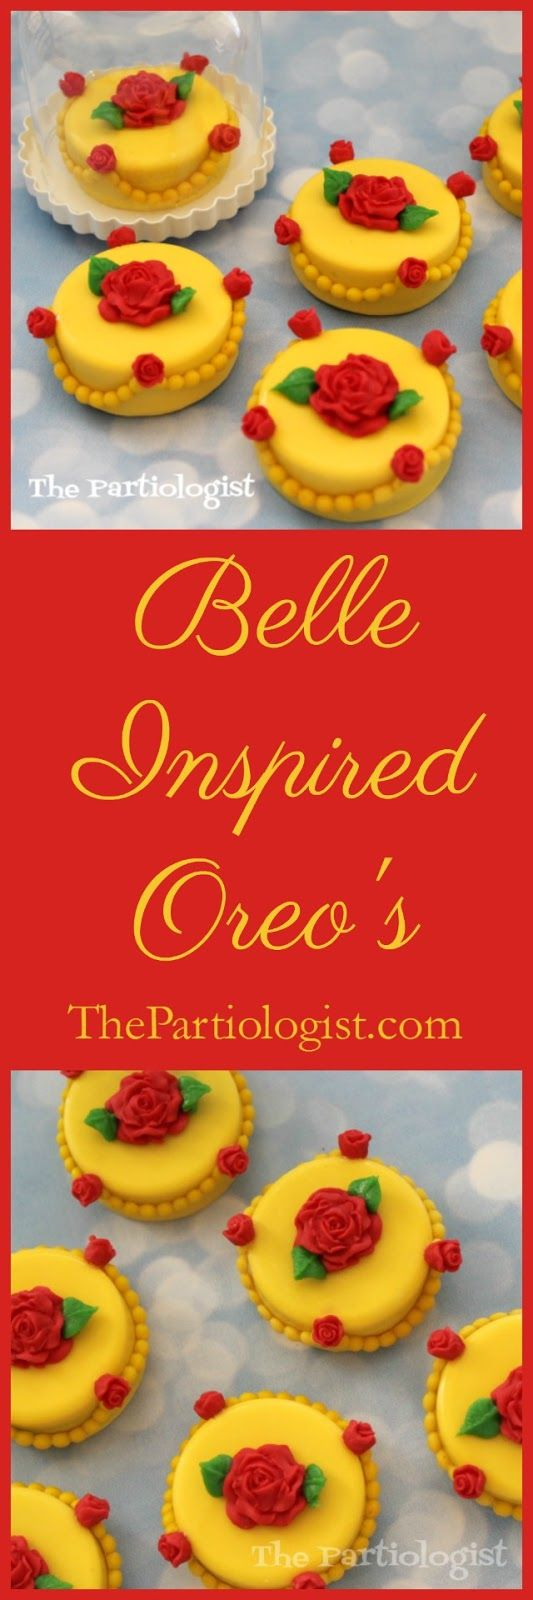 Belle Inspired Oreos ~ The Partiologist